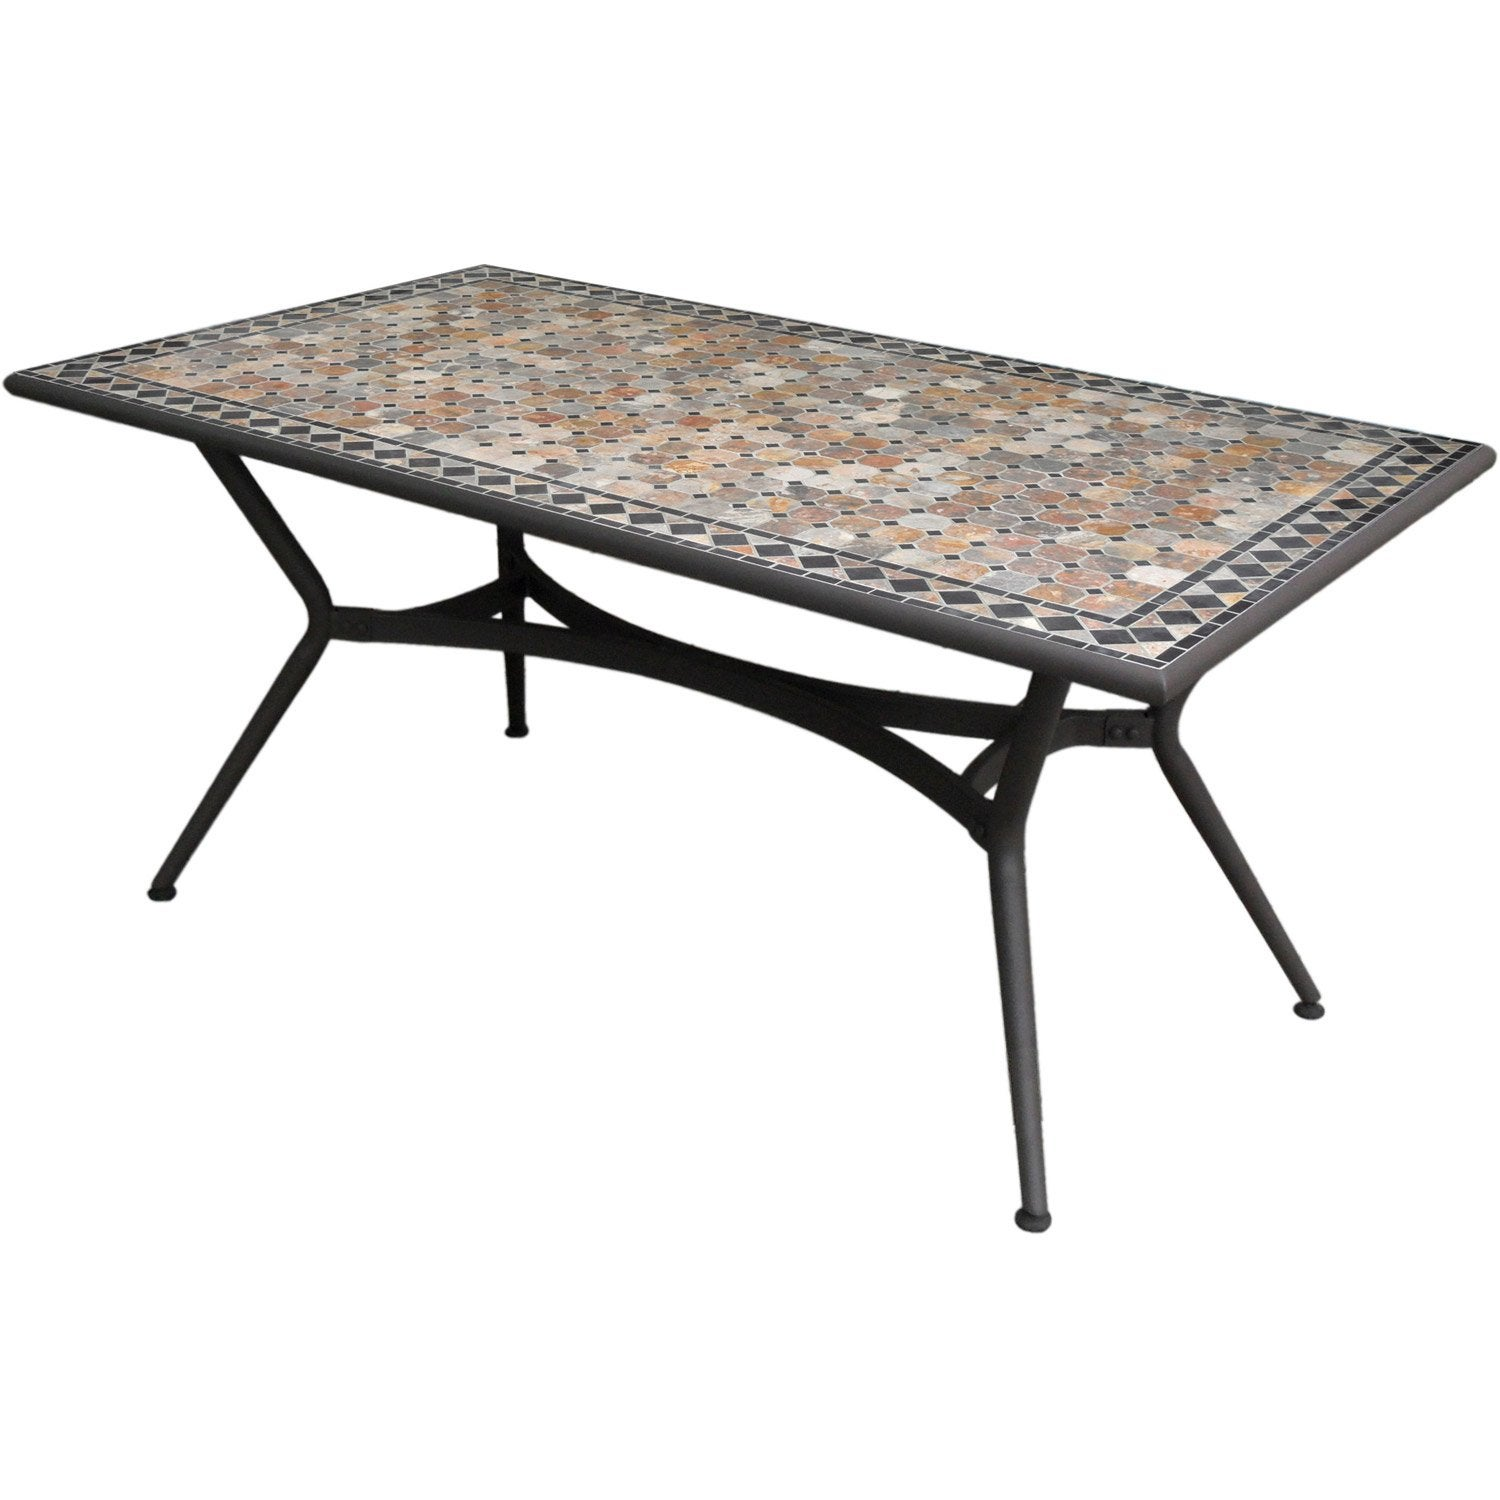 Table de jardin marocco rectangulaire anthracite 6 personnes leroy merlin - Table de jardin pliante chez carrefour ...